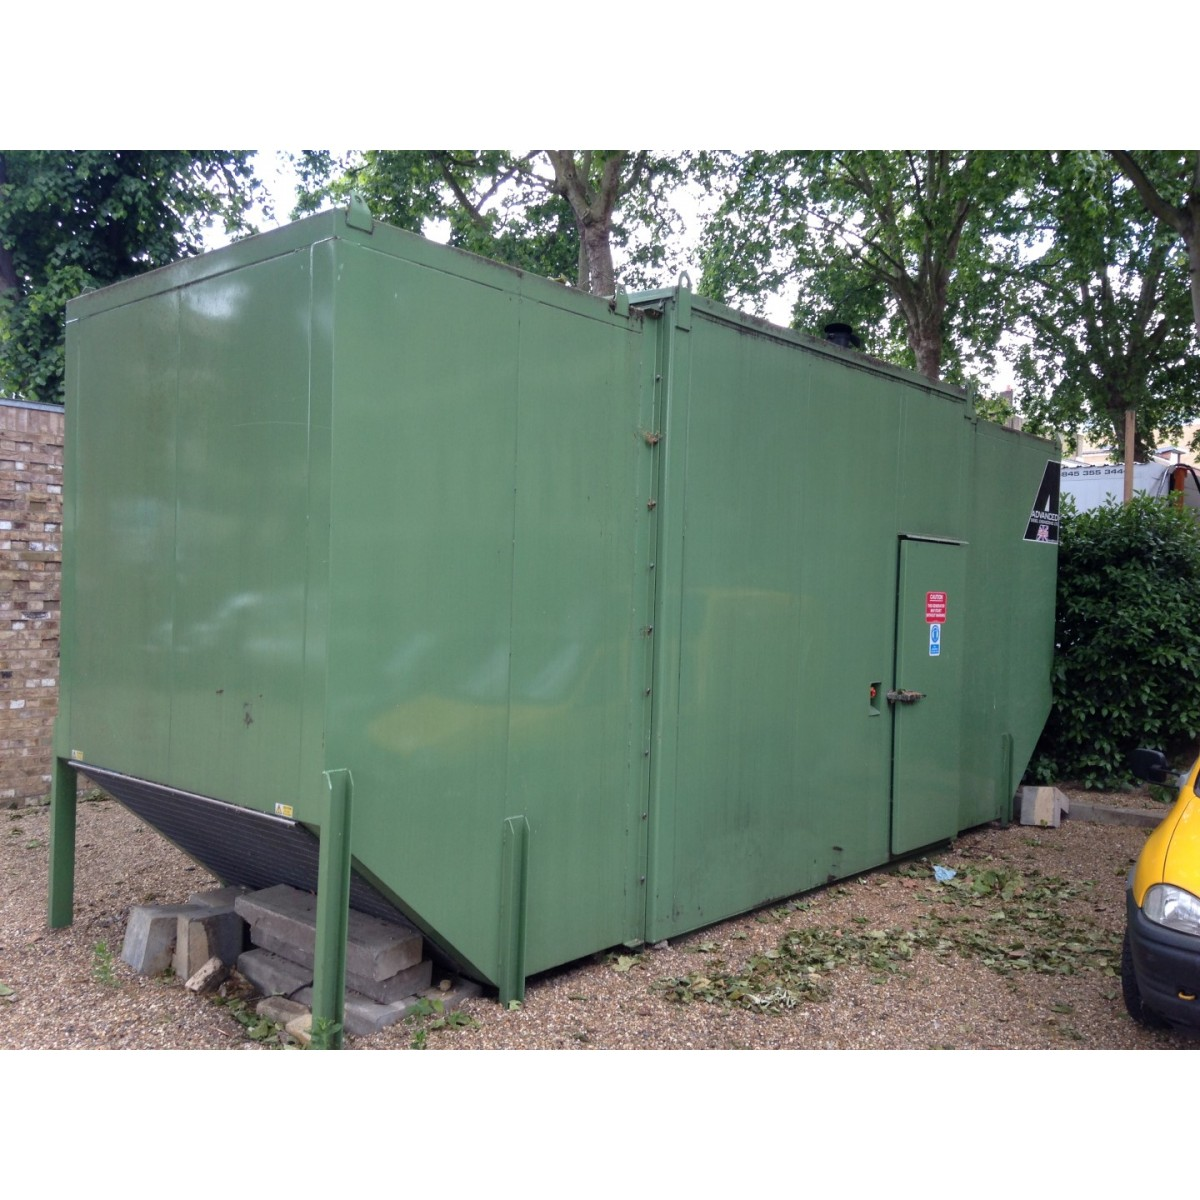 Drop Over Canopy To Suit Generator Up 300kva Incredible Noise Level 60Db At 1